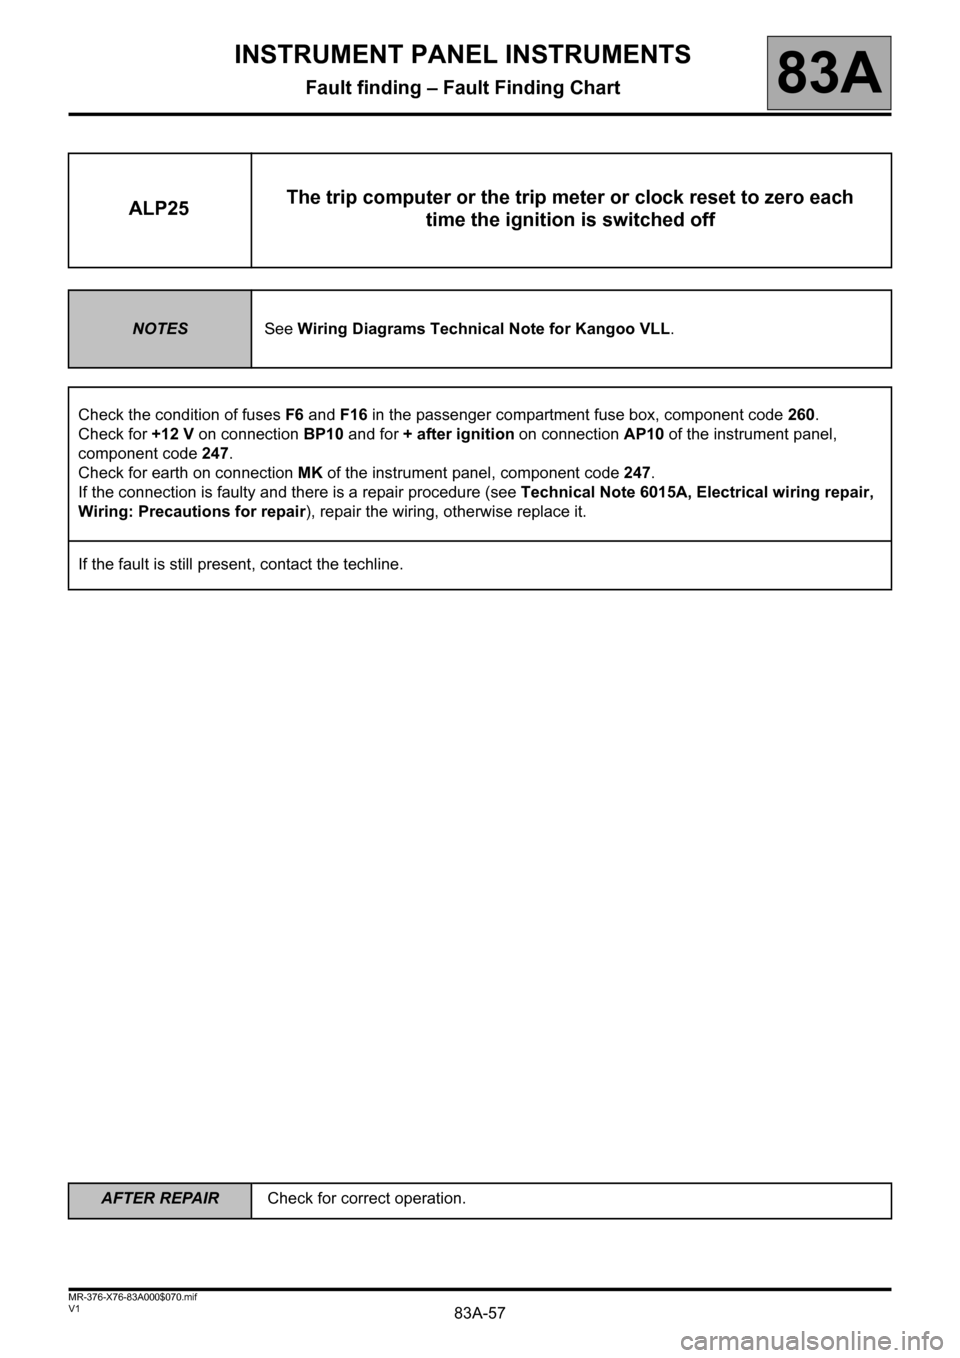 RENAULT KANGOO 2013 X61 / 2.G Instrument Panel Instruments Workshop Manual, Page 57